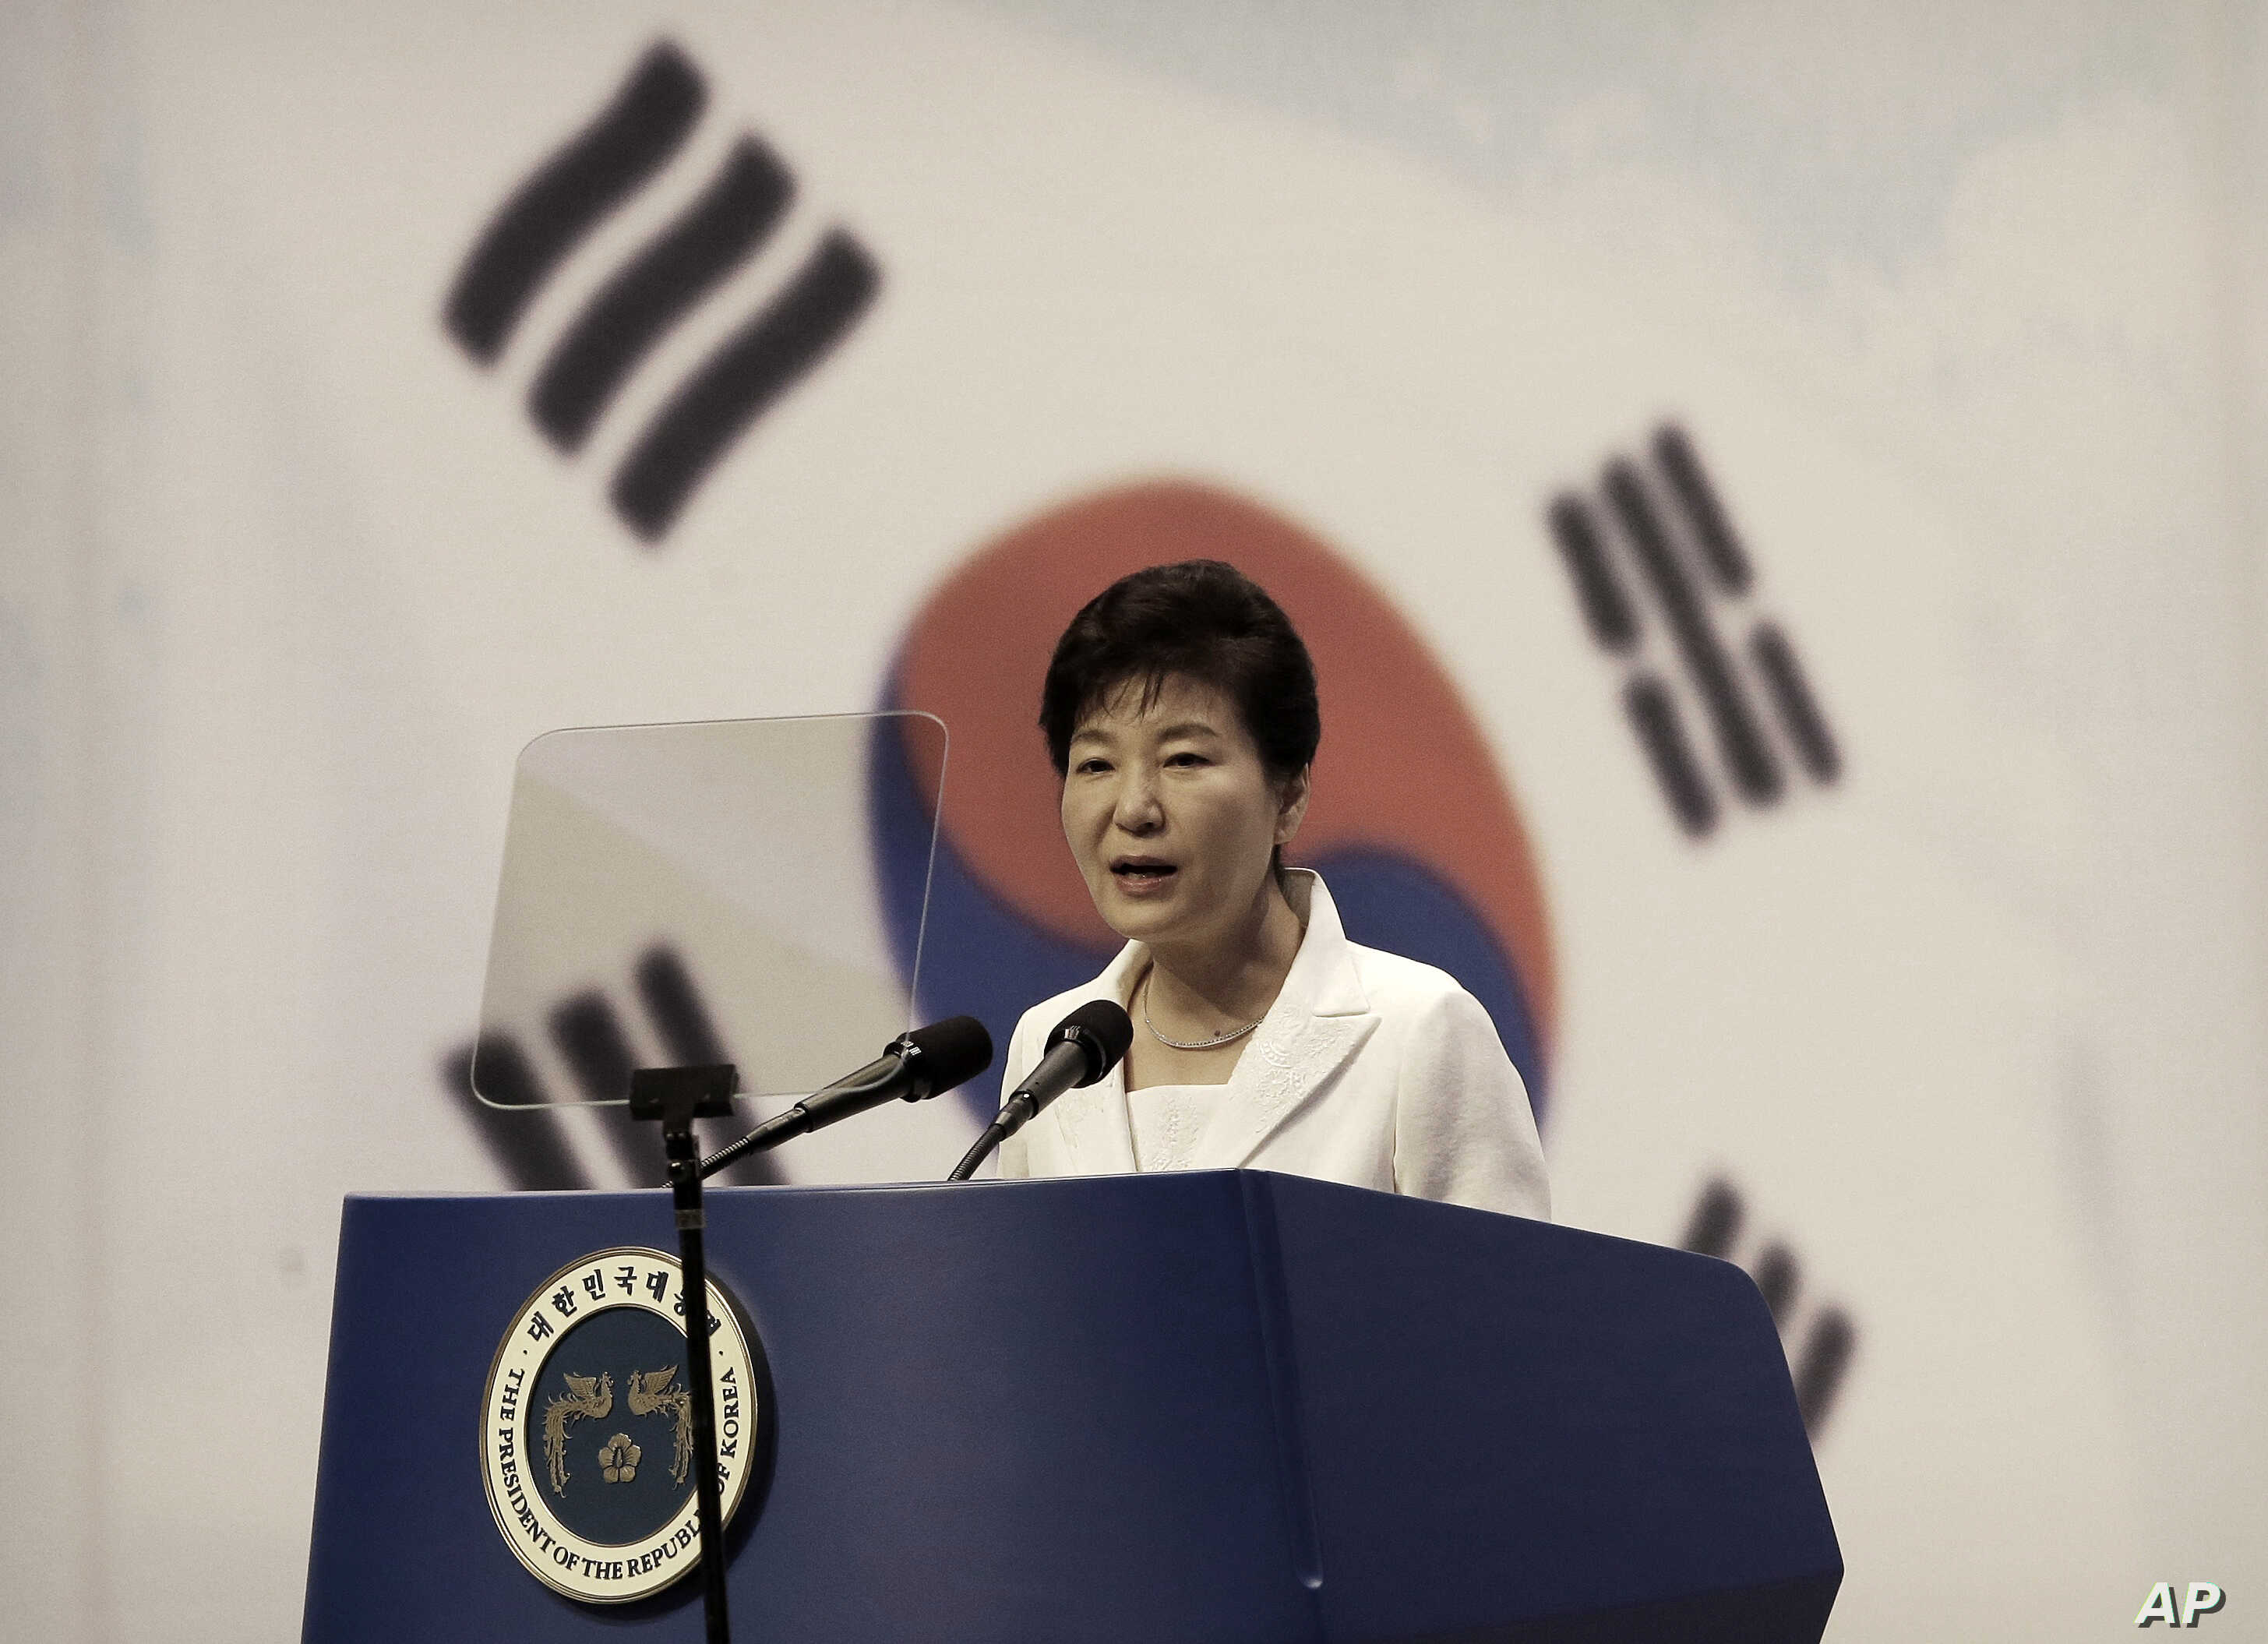 South Korean President Park Geun-hye delivers a speech during a ceremony to celebrate Korean Liberation Day from Japanese colonial rule in 1945, at Seong Cultural Center in Seoul, South Korea, Aug. 15, 2015.